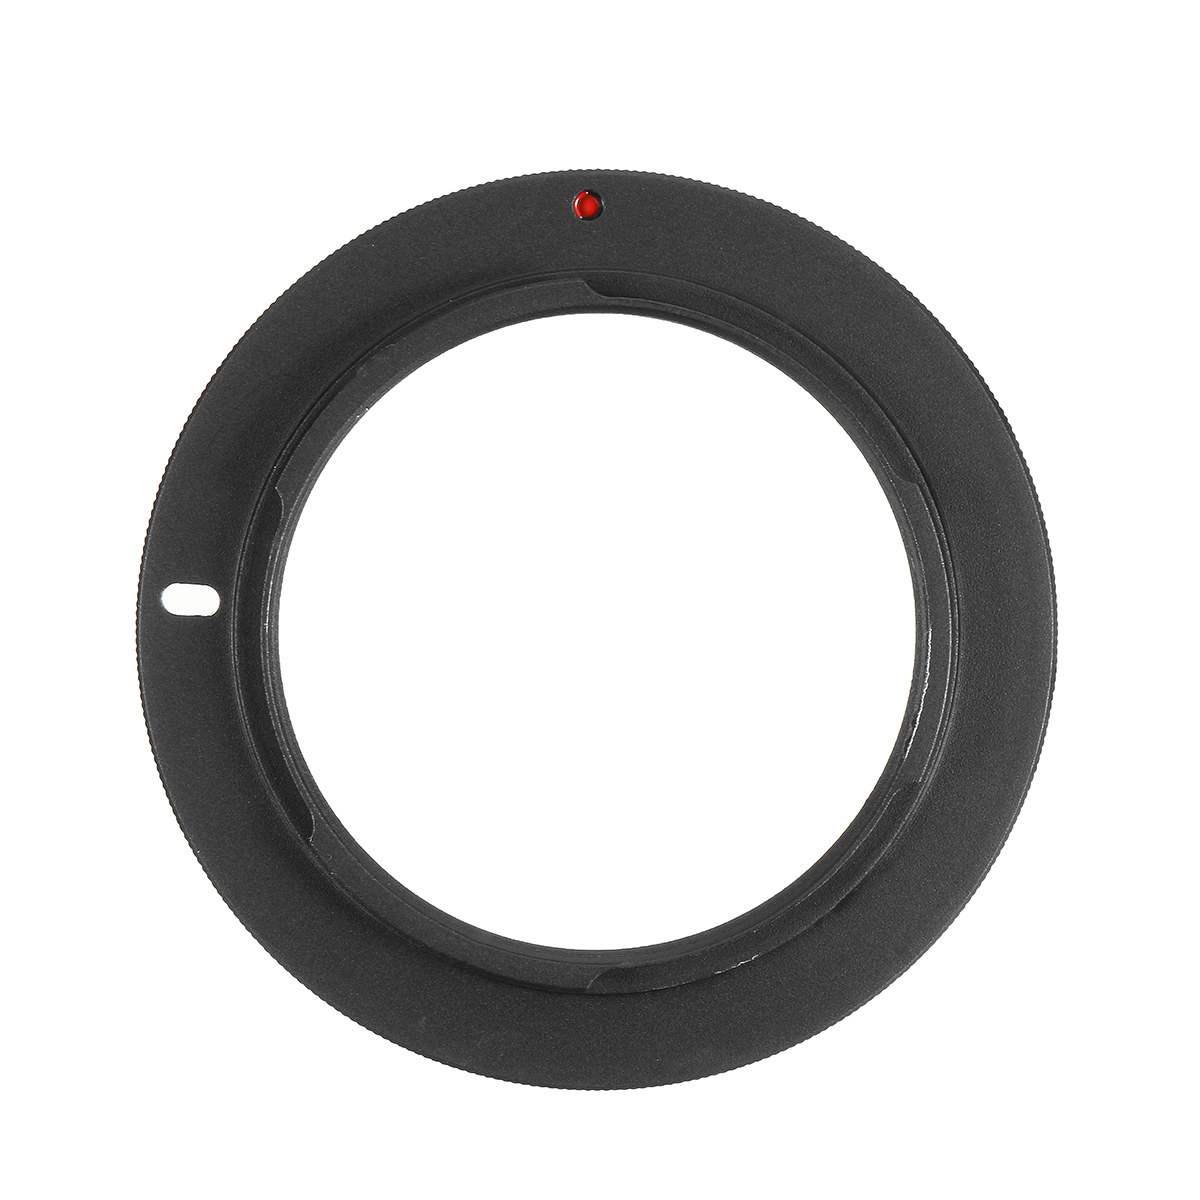 Adapter Ring for M42 Lens To AI Lenses Nikon F D70s D31